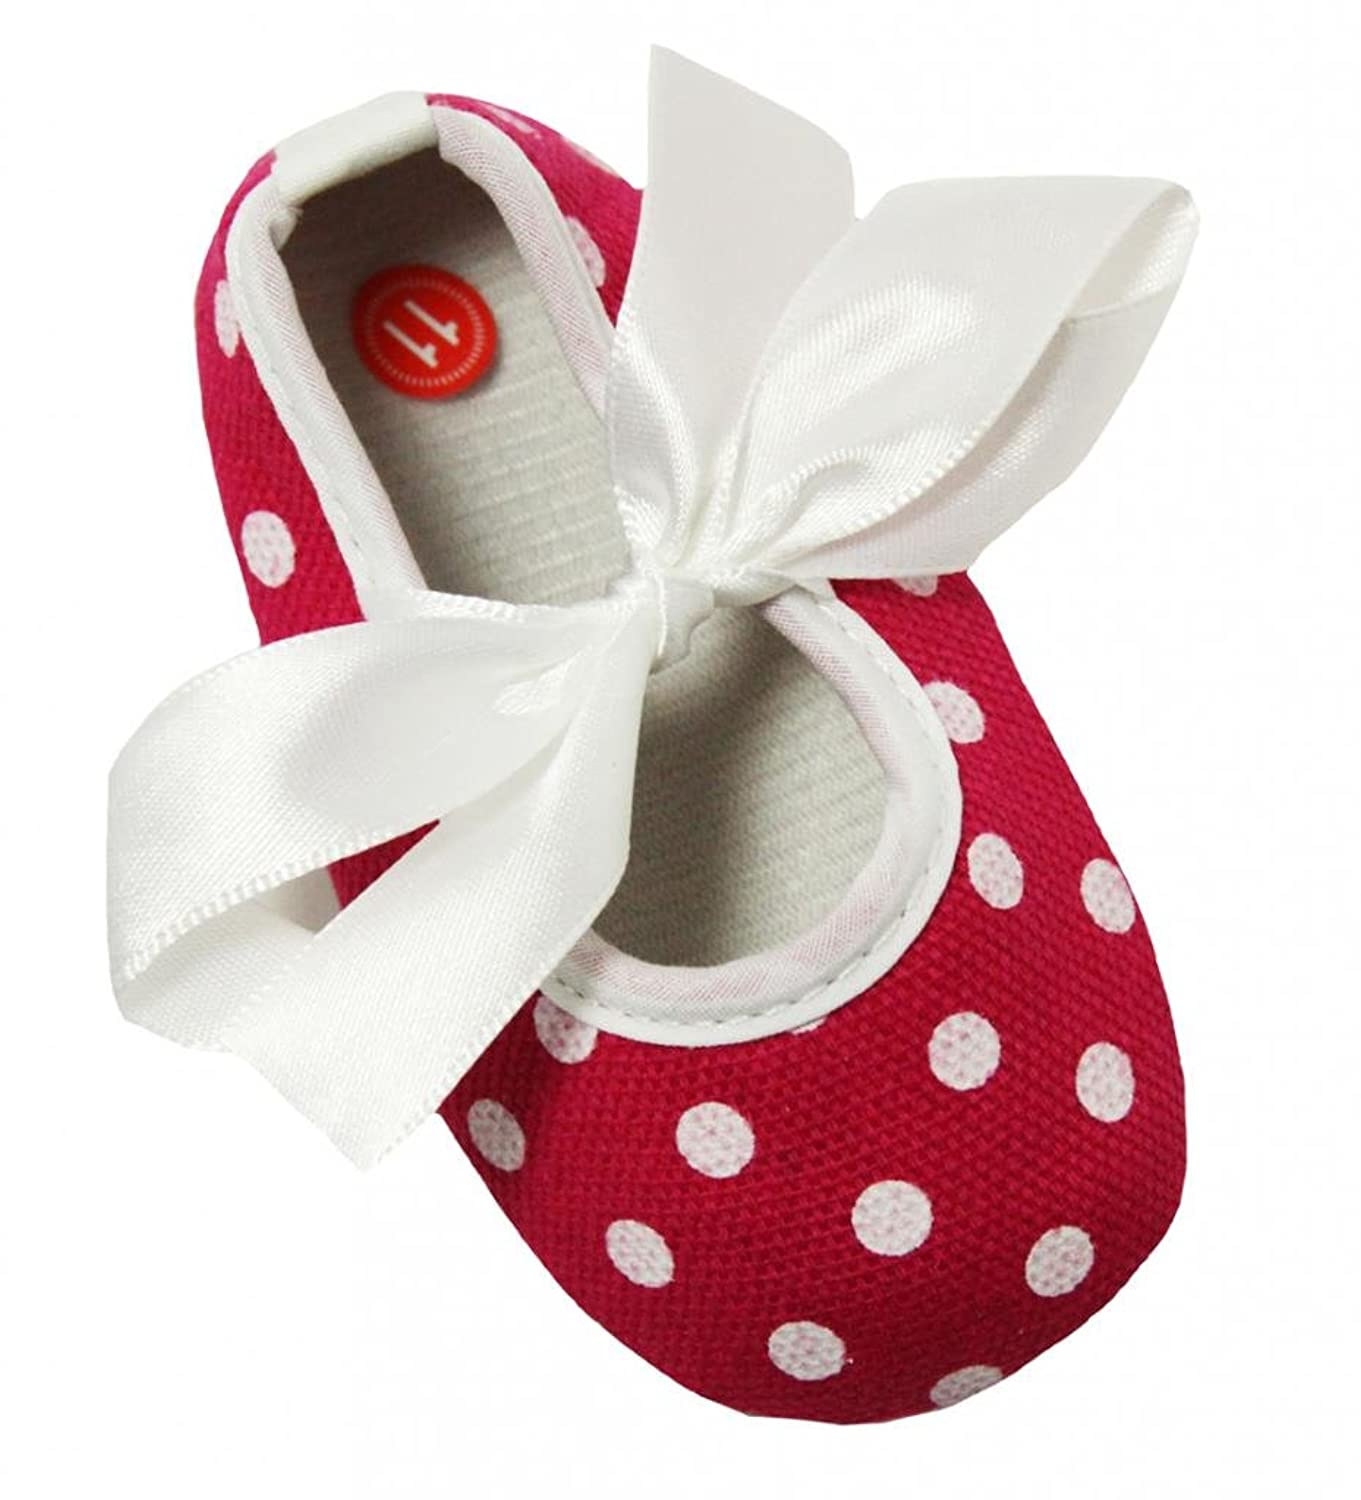 Amazon Hot Pink and White Polka Dot Baby Crib Shoes Clothing